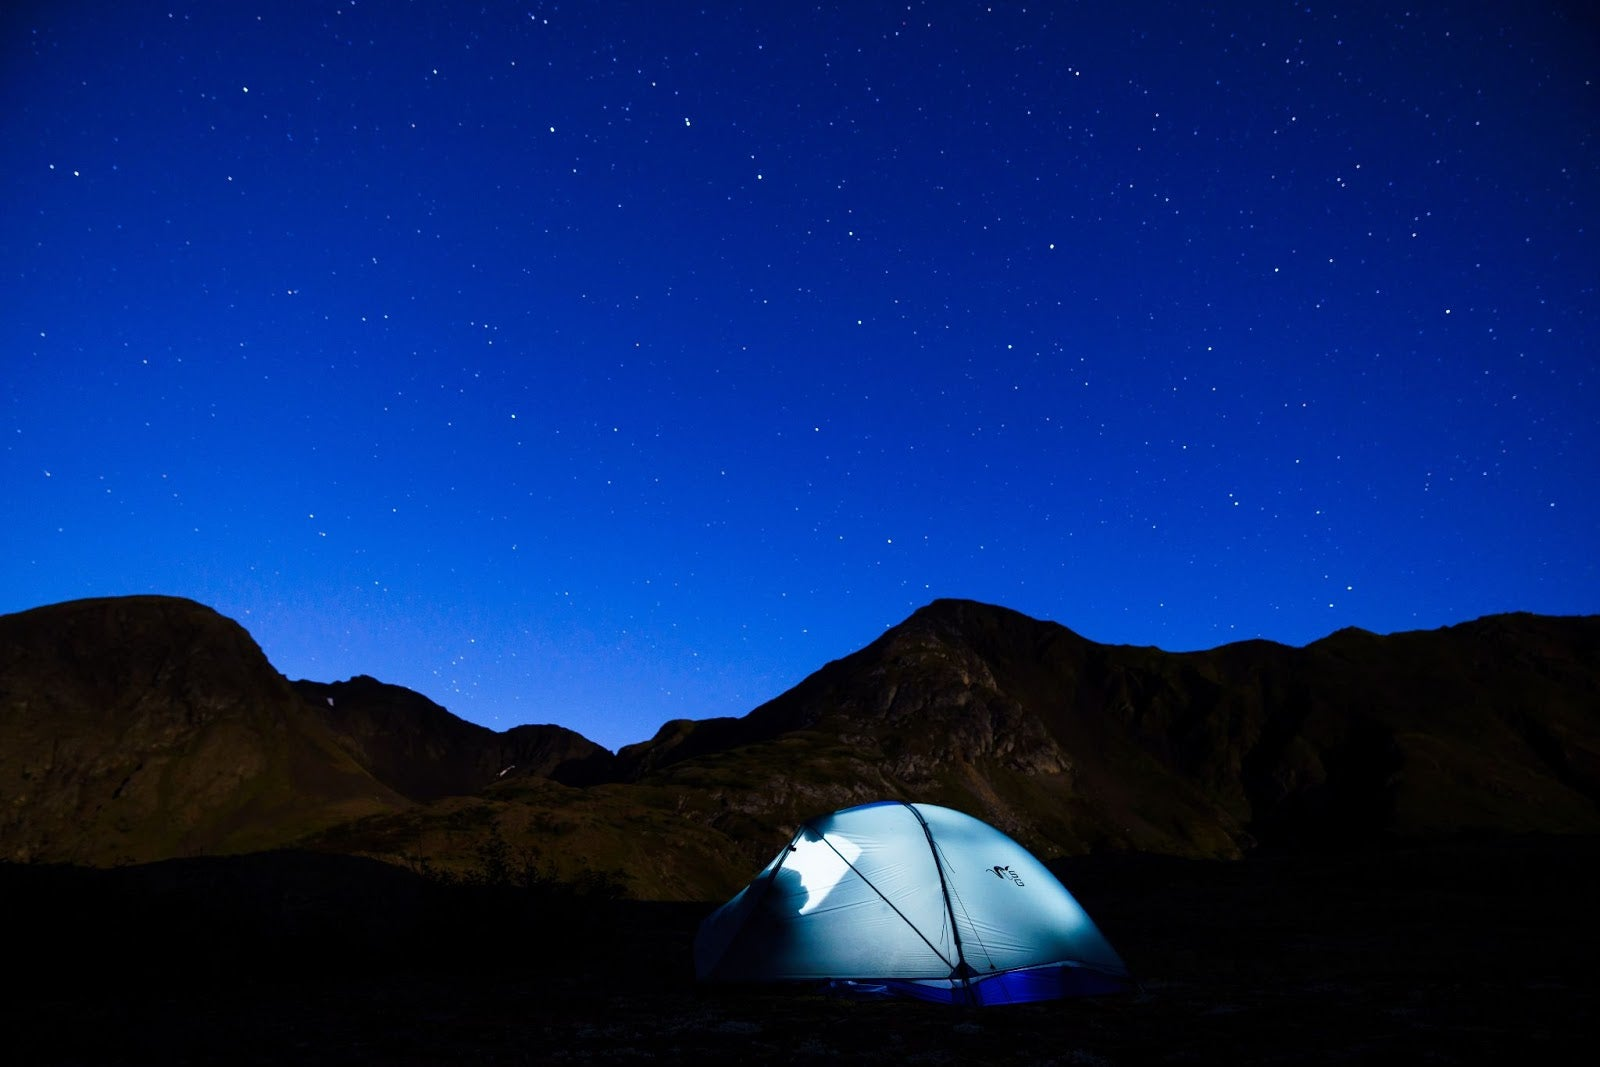 camping in wilderness under a sky full of stars